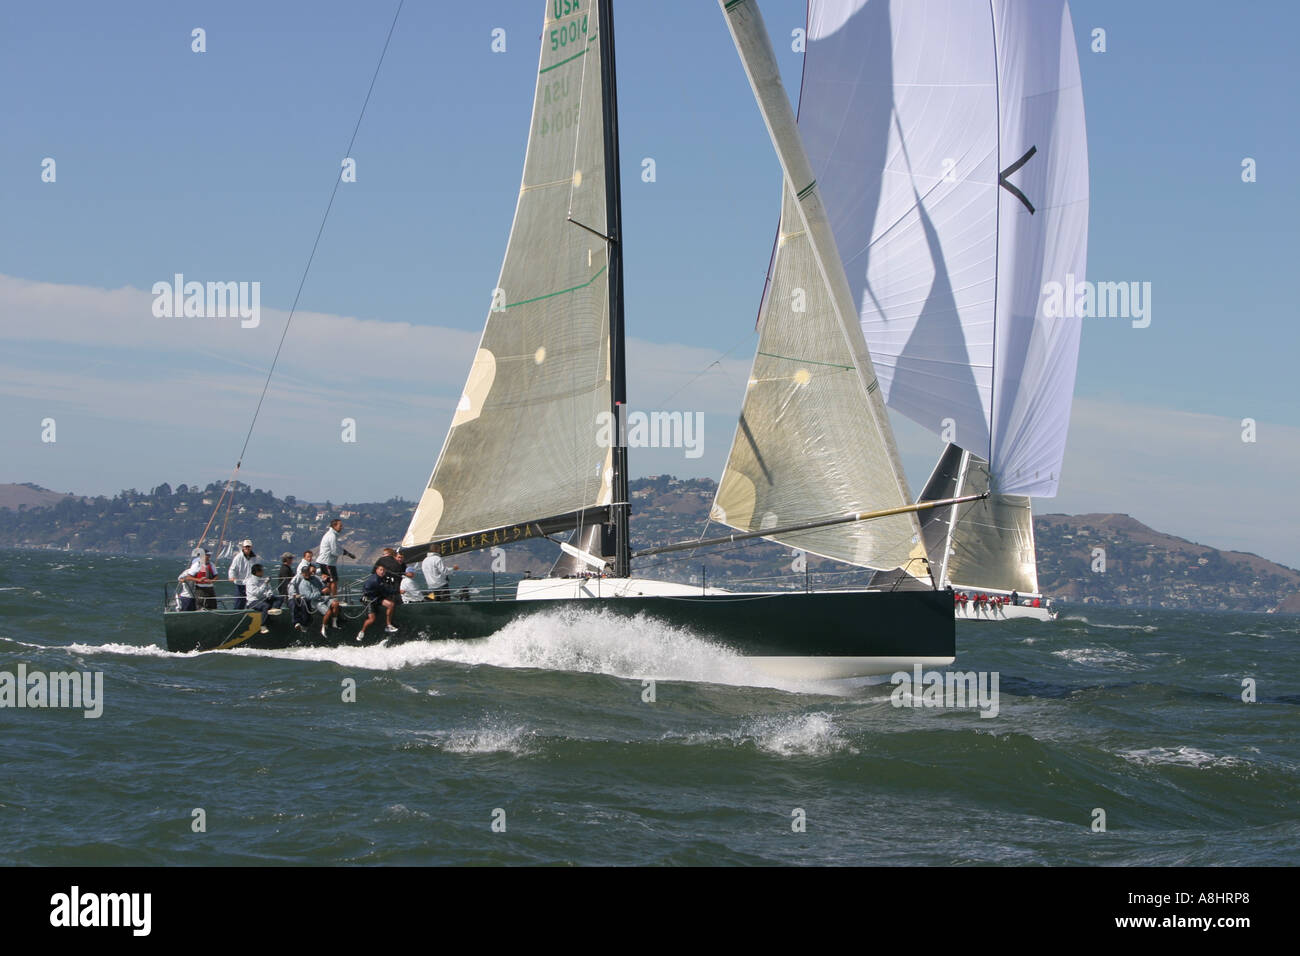 San Fransisco Big Boat Series Presented by Rolex 2004 Stock Photo